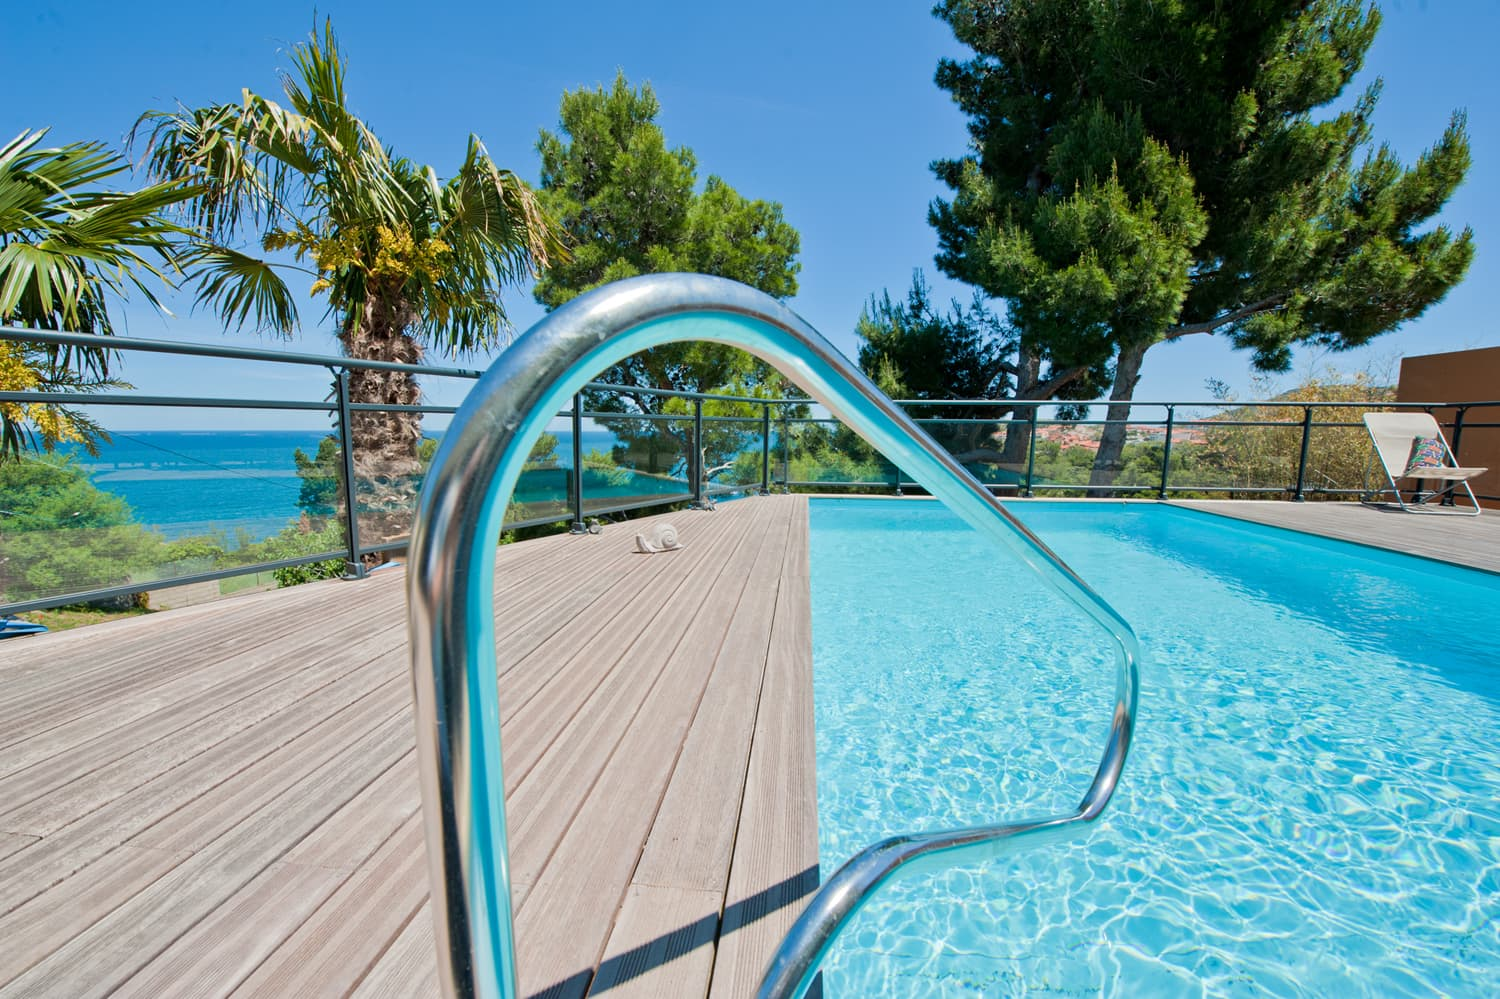 Private pool in Collioure with Mediterranean Sea views in Collioure